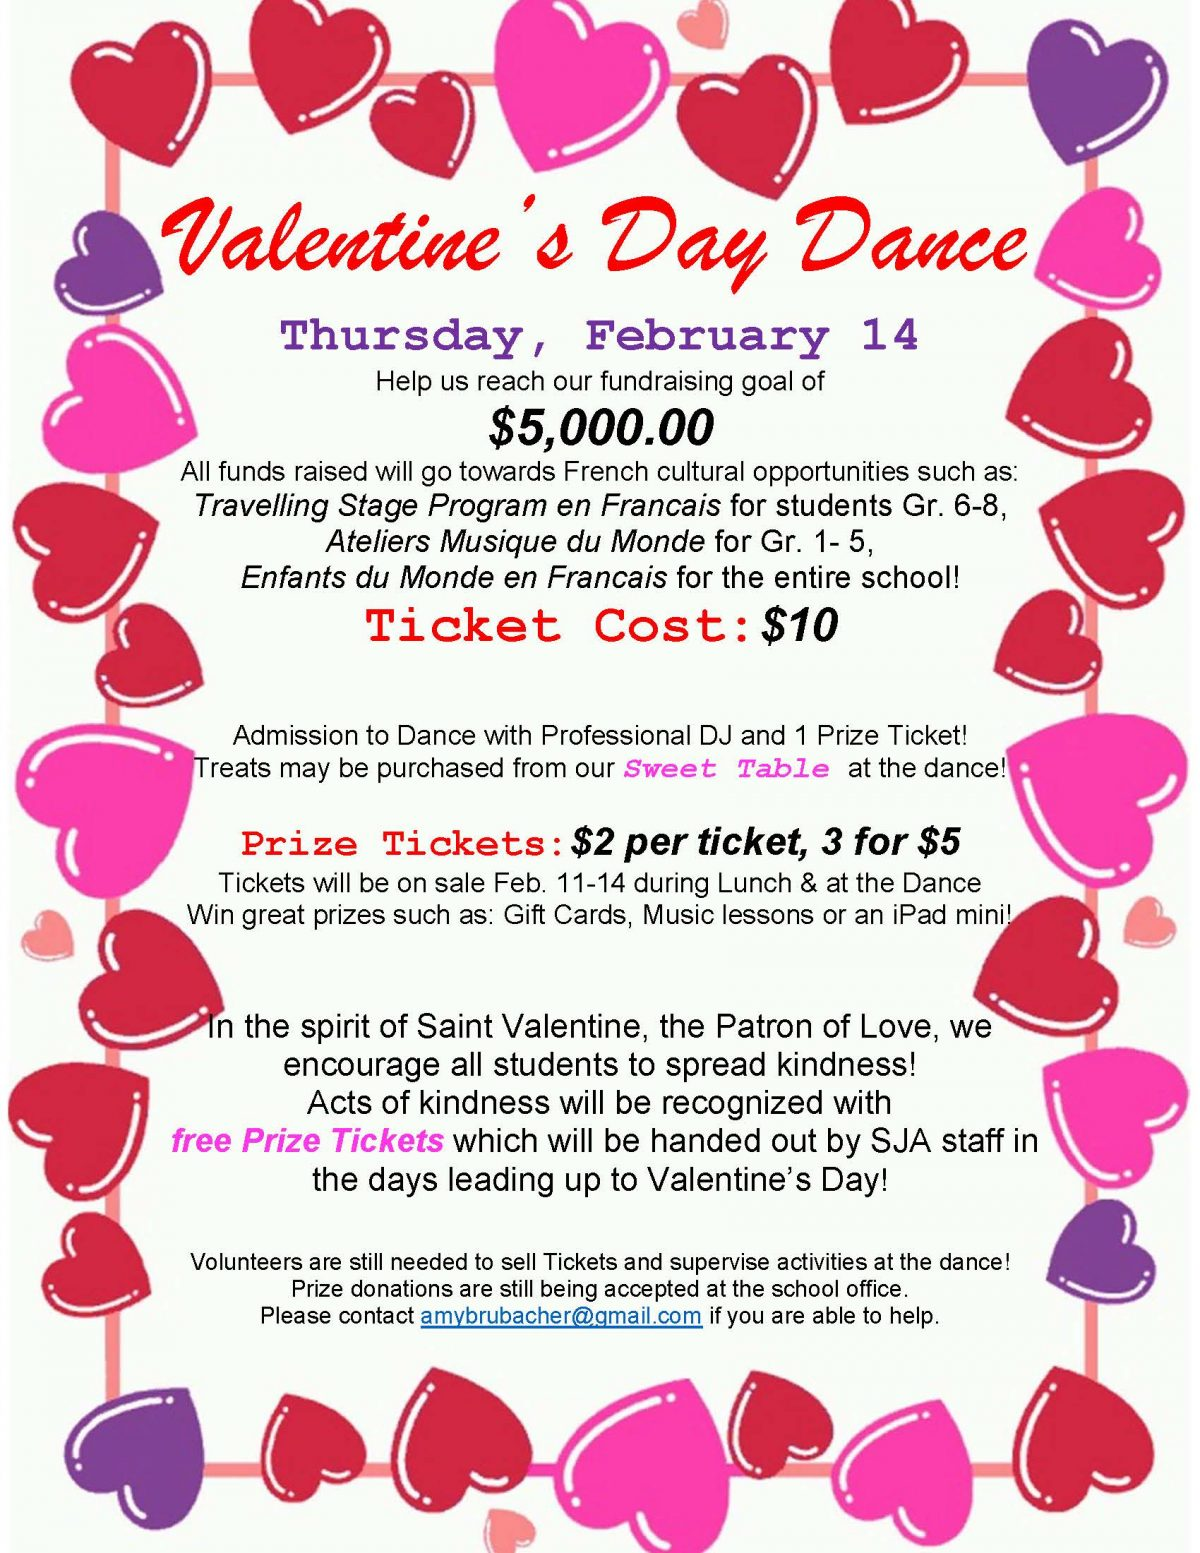 Valentine's Day Dance